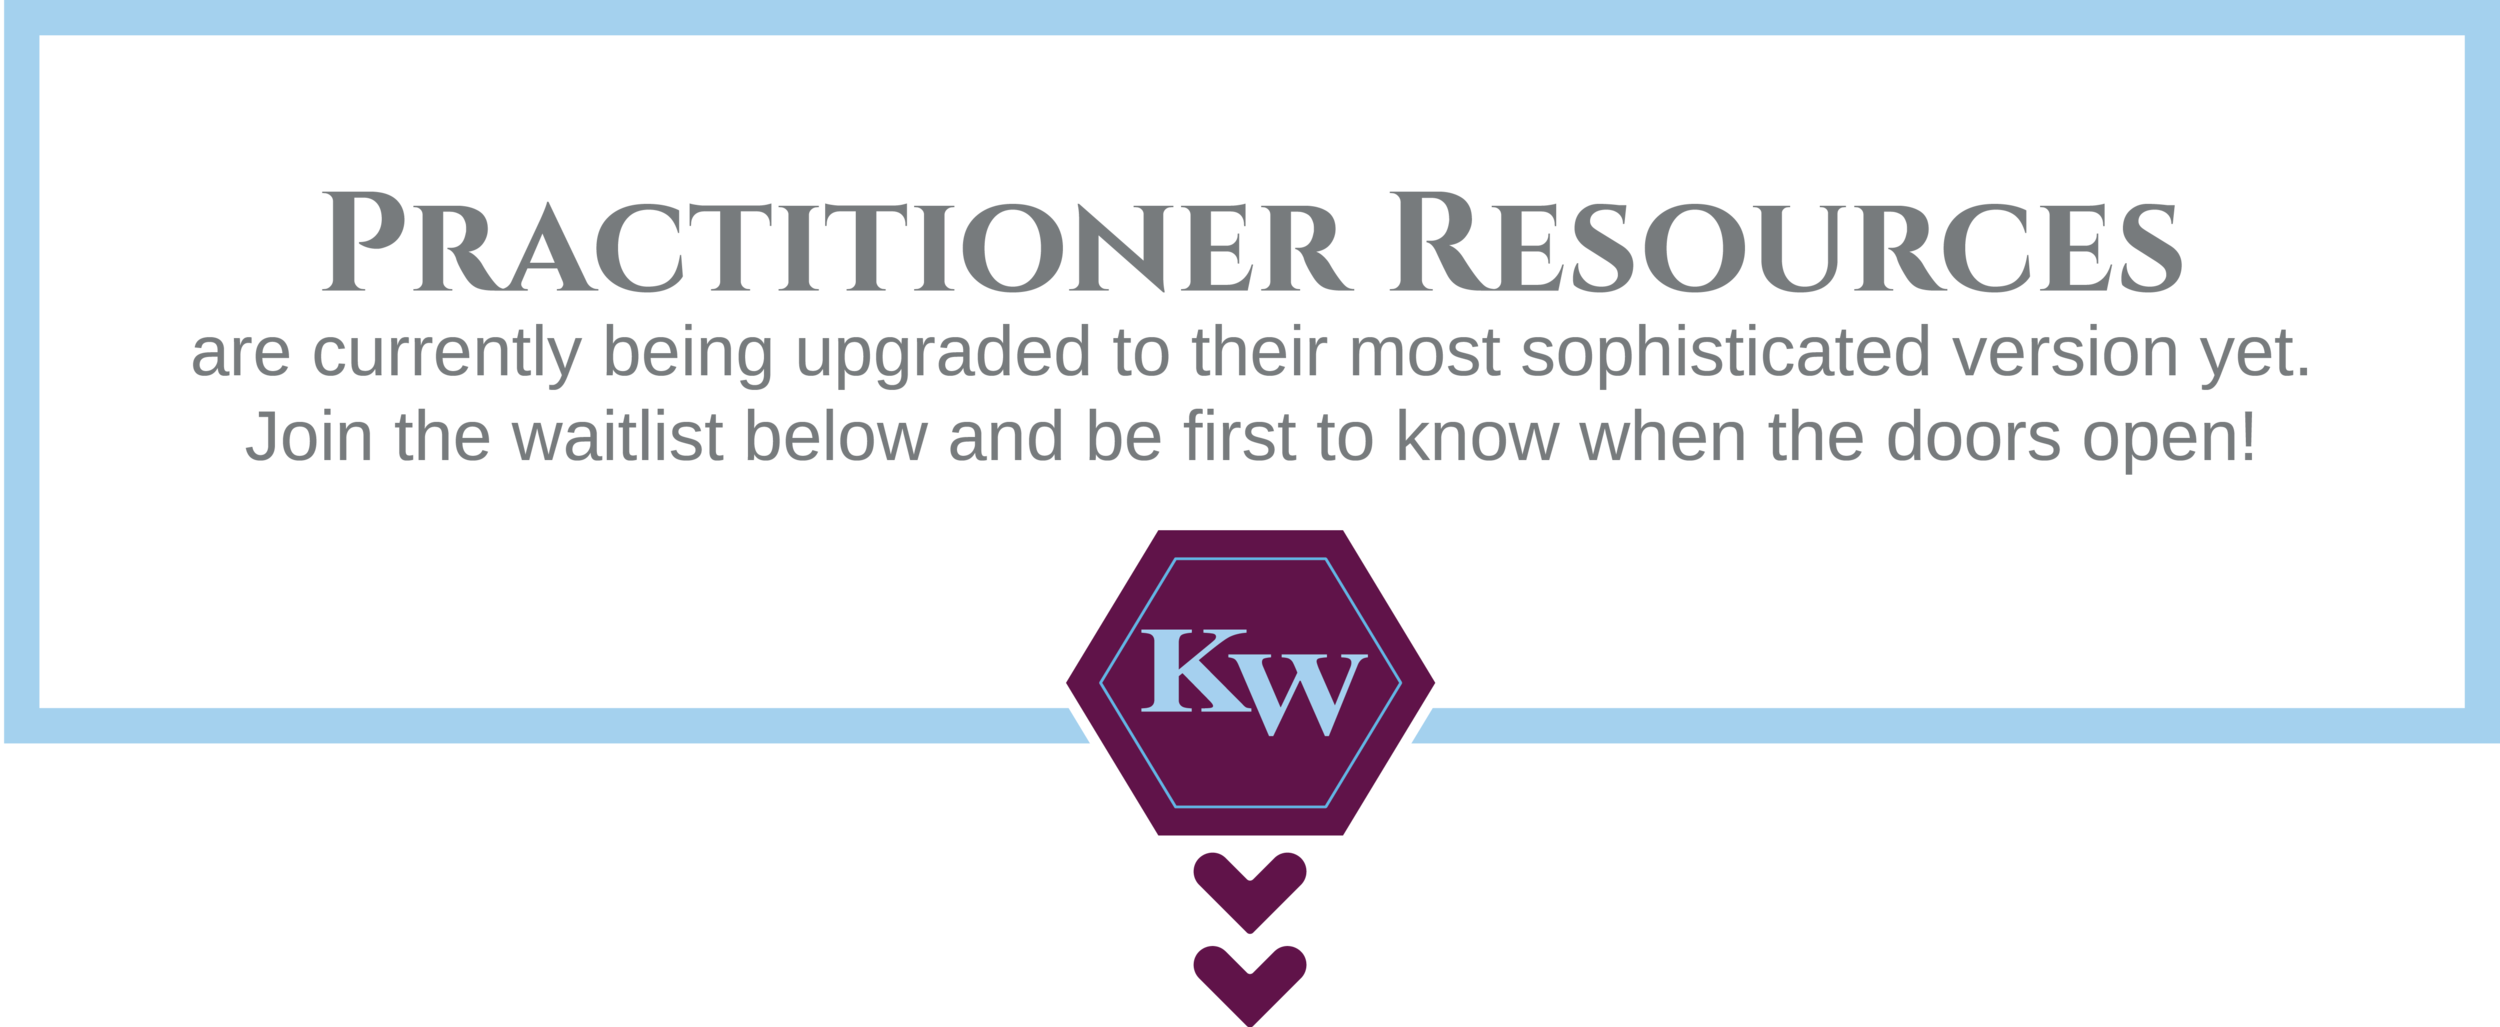 DKW Web BN Practitioner Resources Waitlist Image-1.png